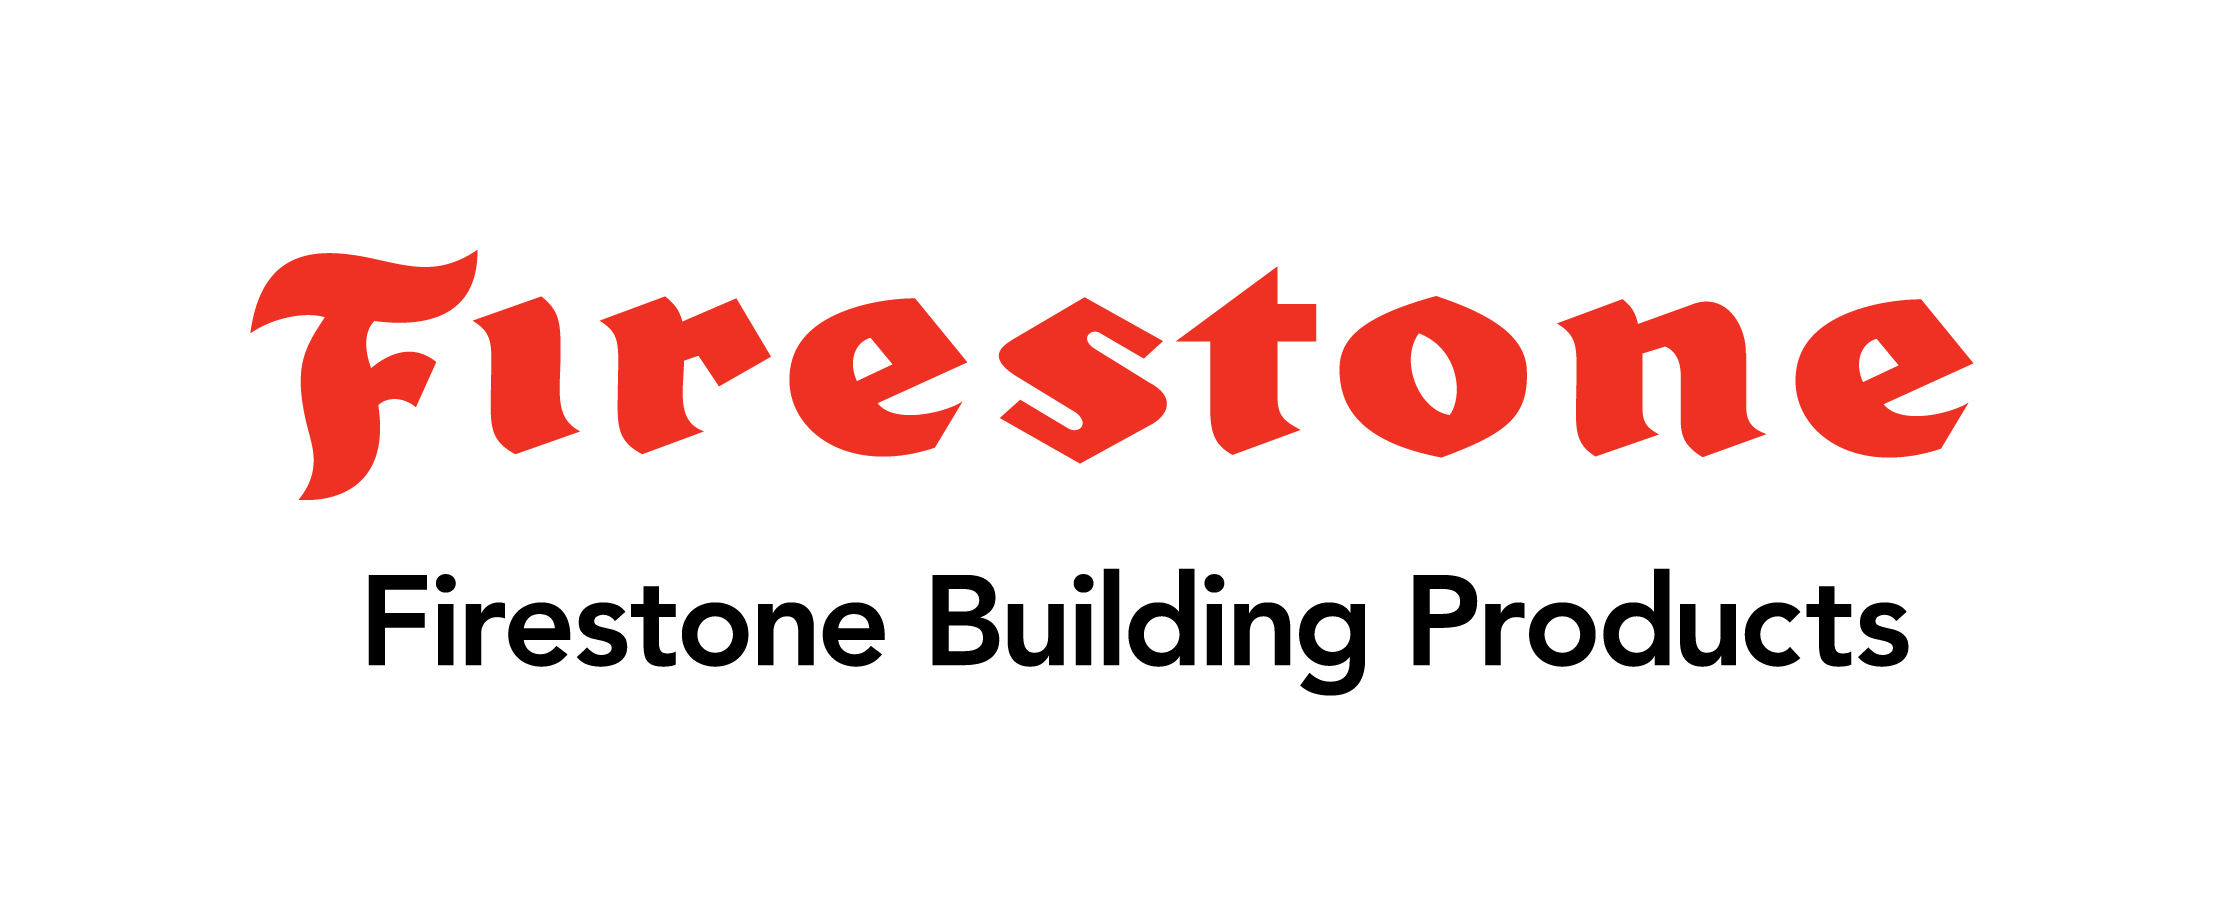 2018 Firestone Building Products Sales & Marketing Meeting